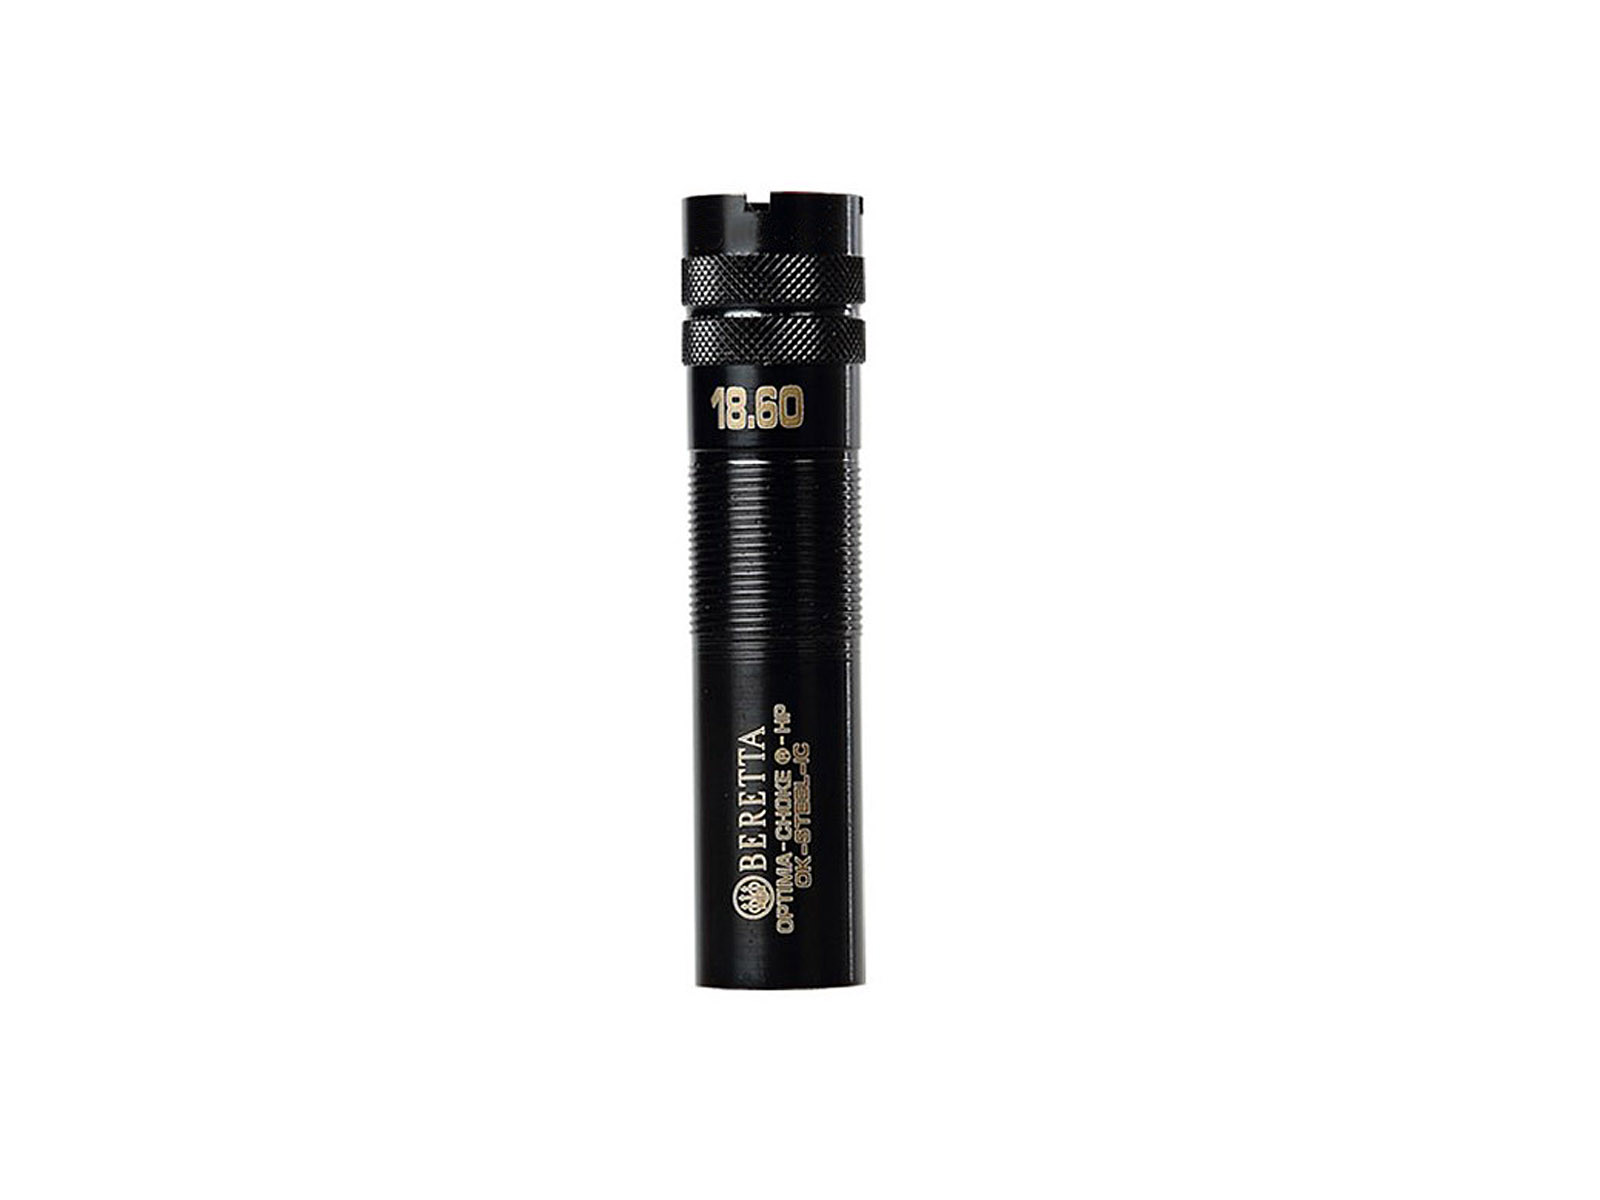 Avalon Guns Product Image